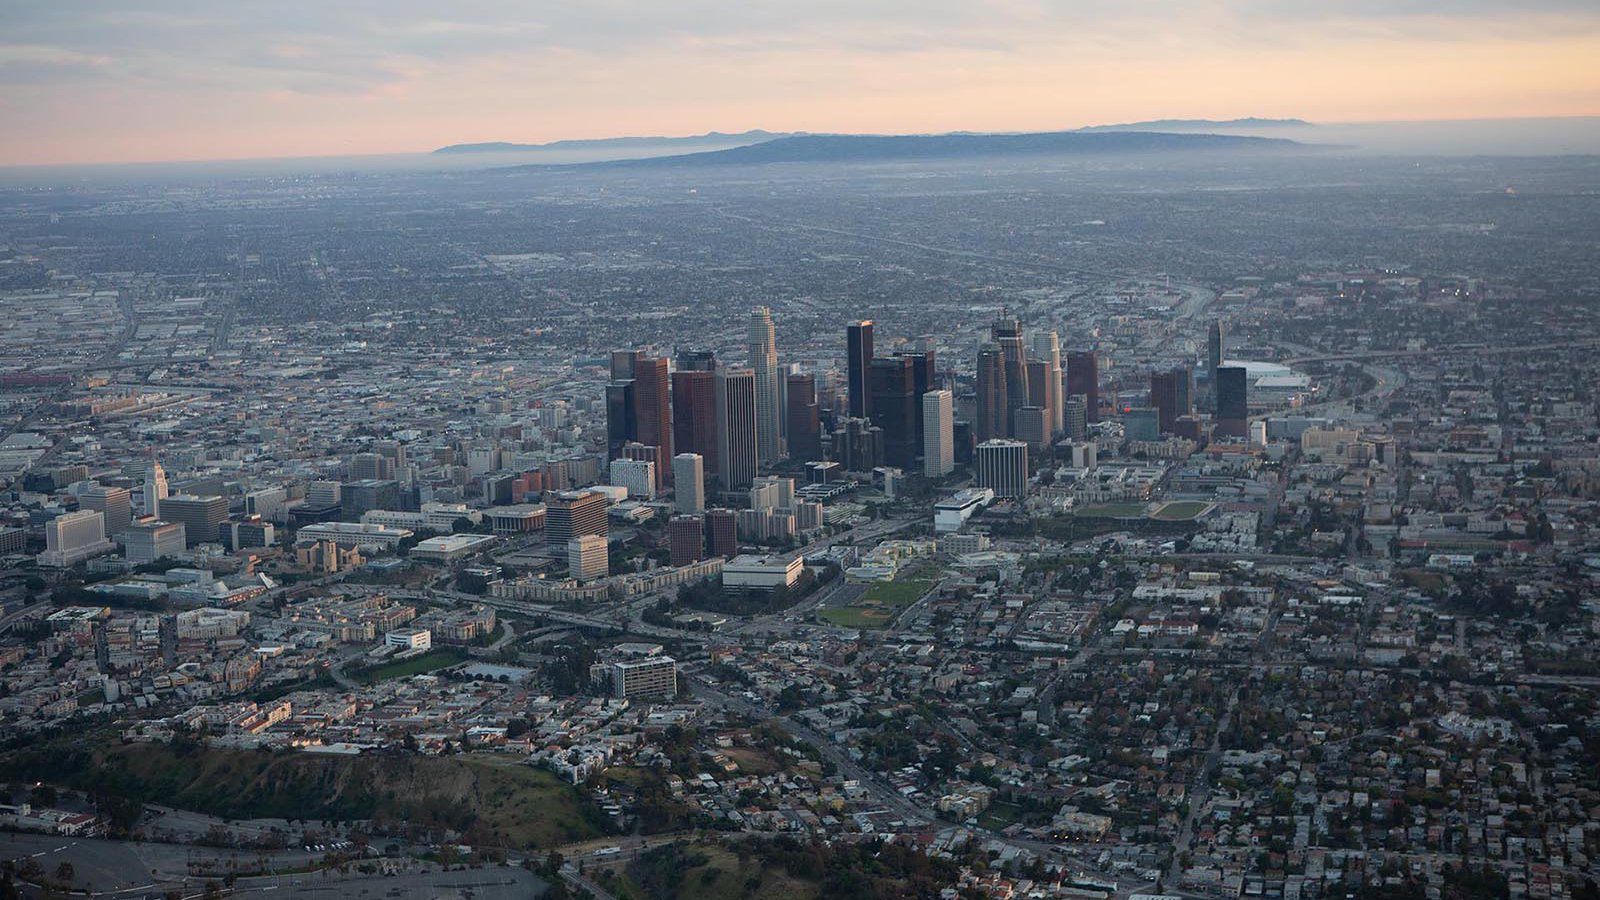 Aerial cityscape of Downtown Los Angeles Skyline at Sunset before any post-production or color-correction